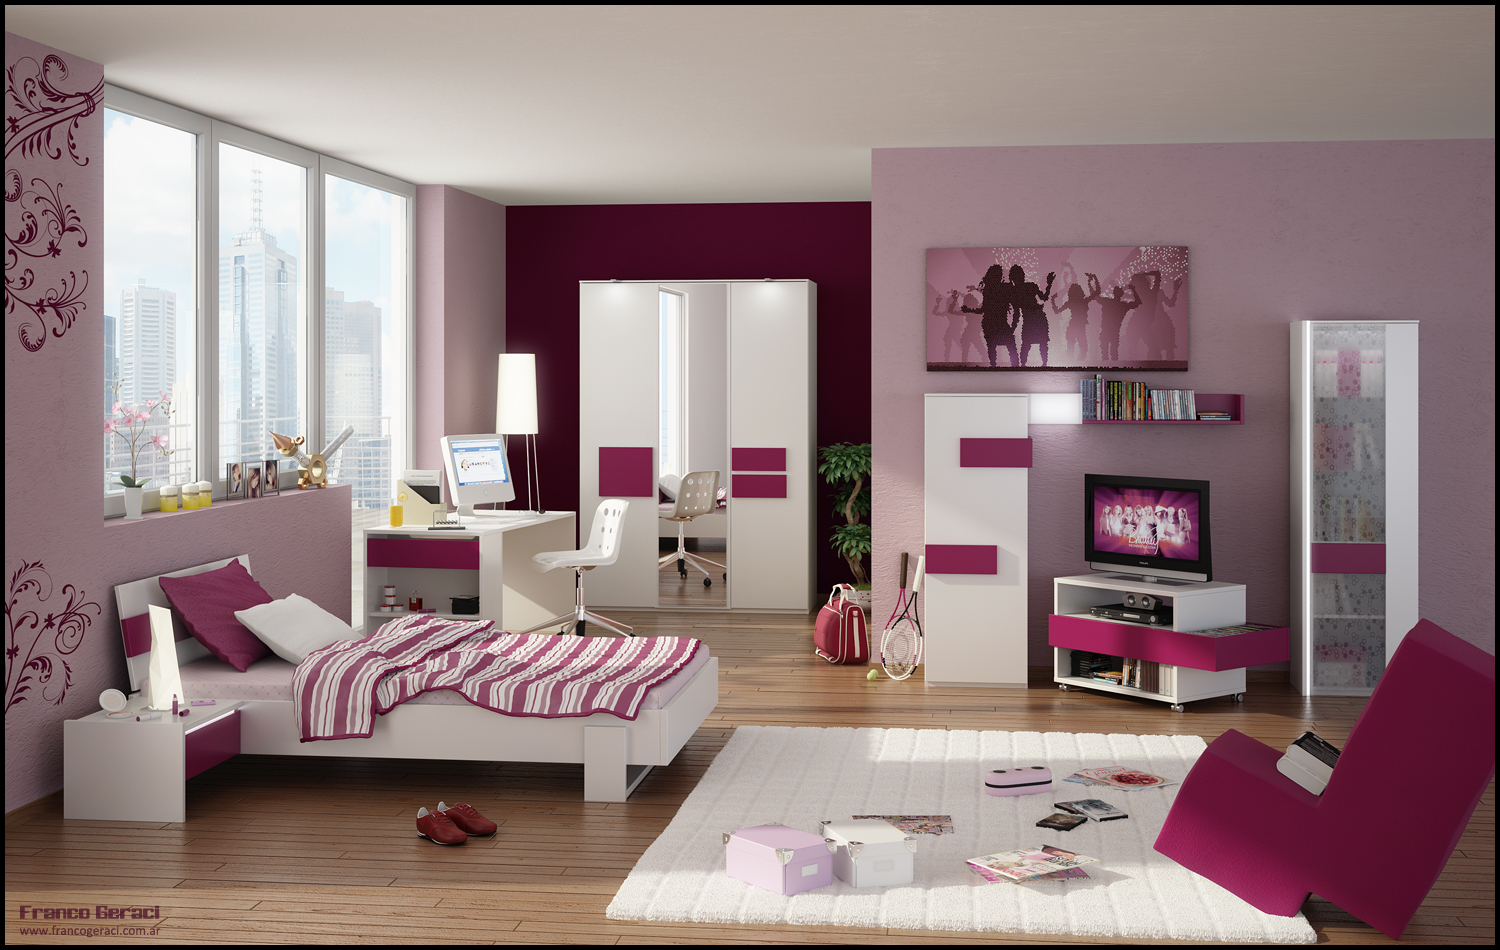 Teenage room designs In room designs